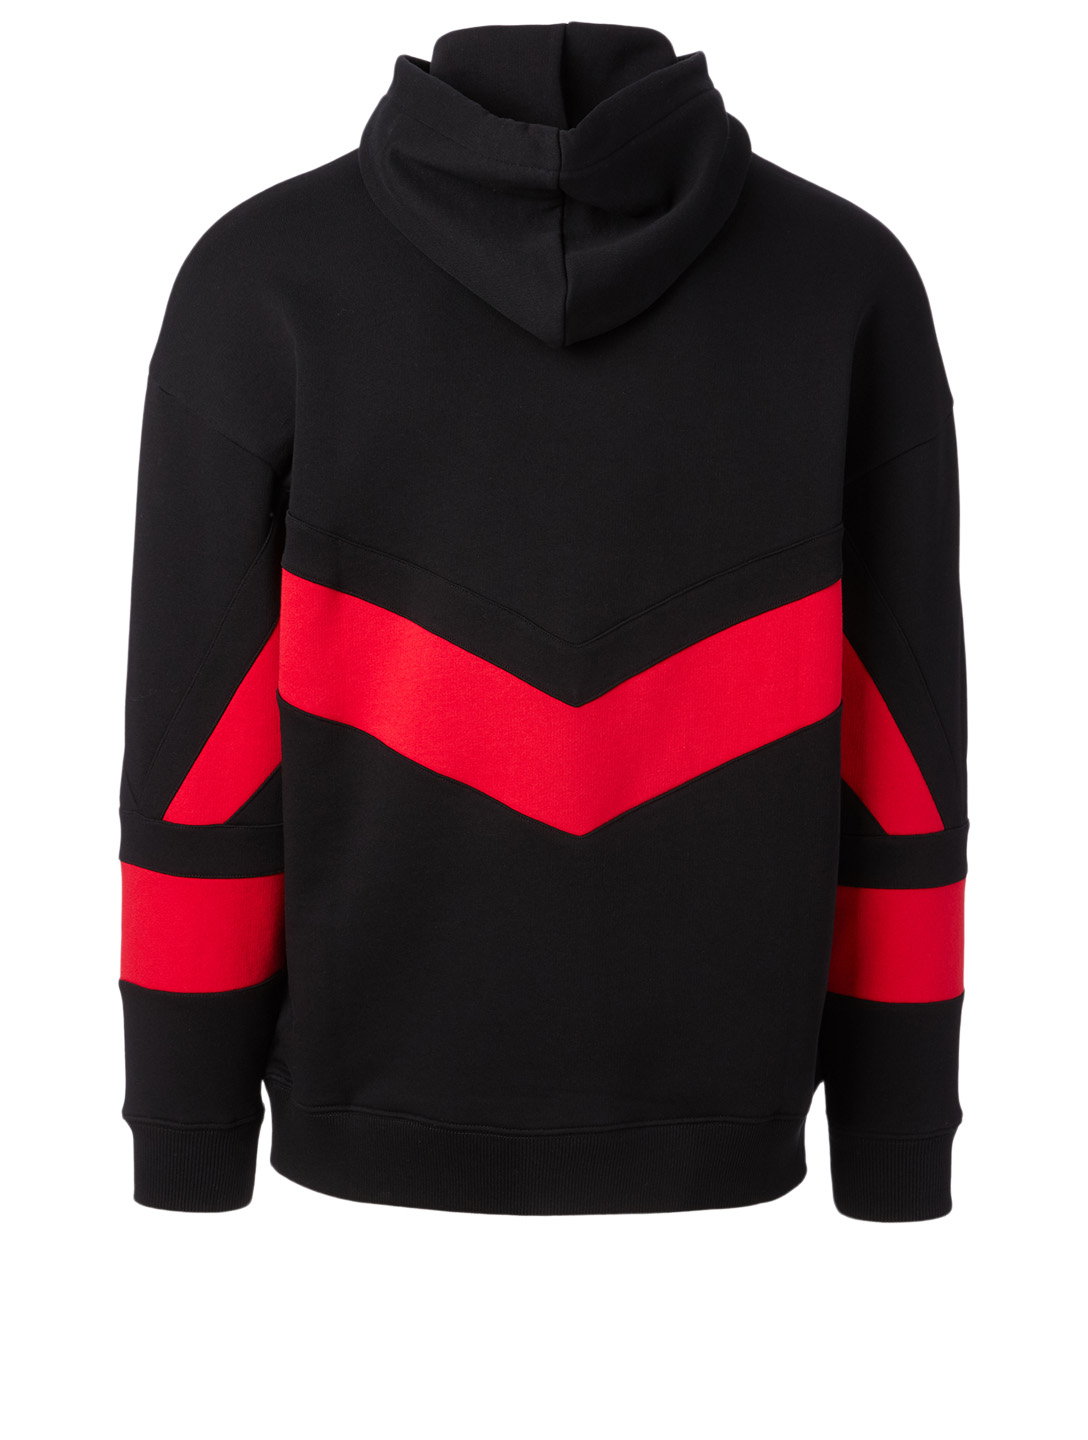 GIVENCHY Cotton Contrast Hoodie Men's Black